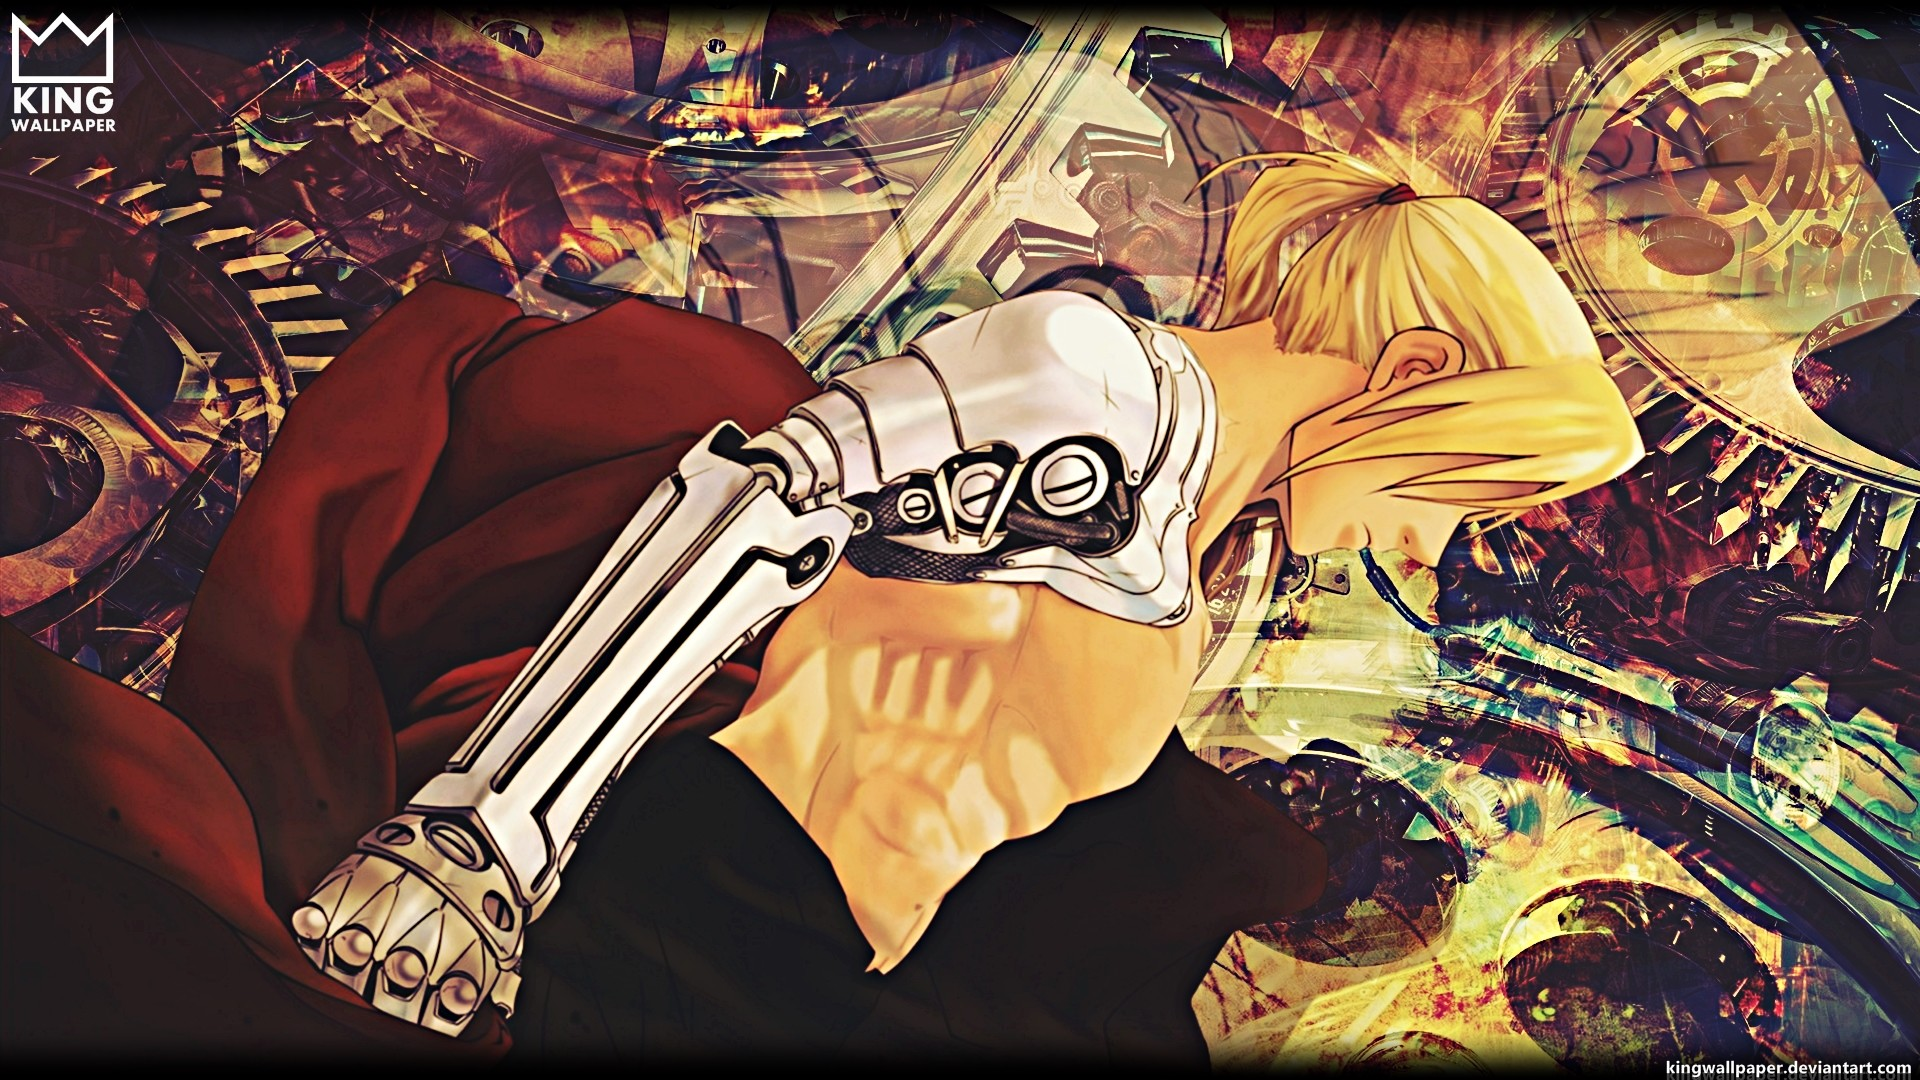 Res: 1920x1080, Fullmetal Alchemist Wallpaper by Kingwallpaper Fullmetal Alchemist Wallpaper  by Kingwallpaper